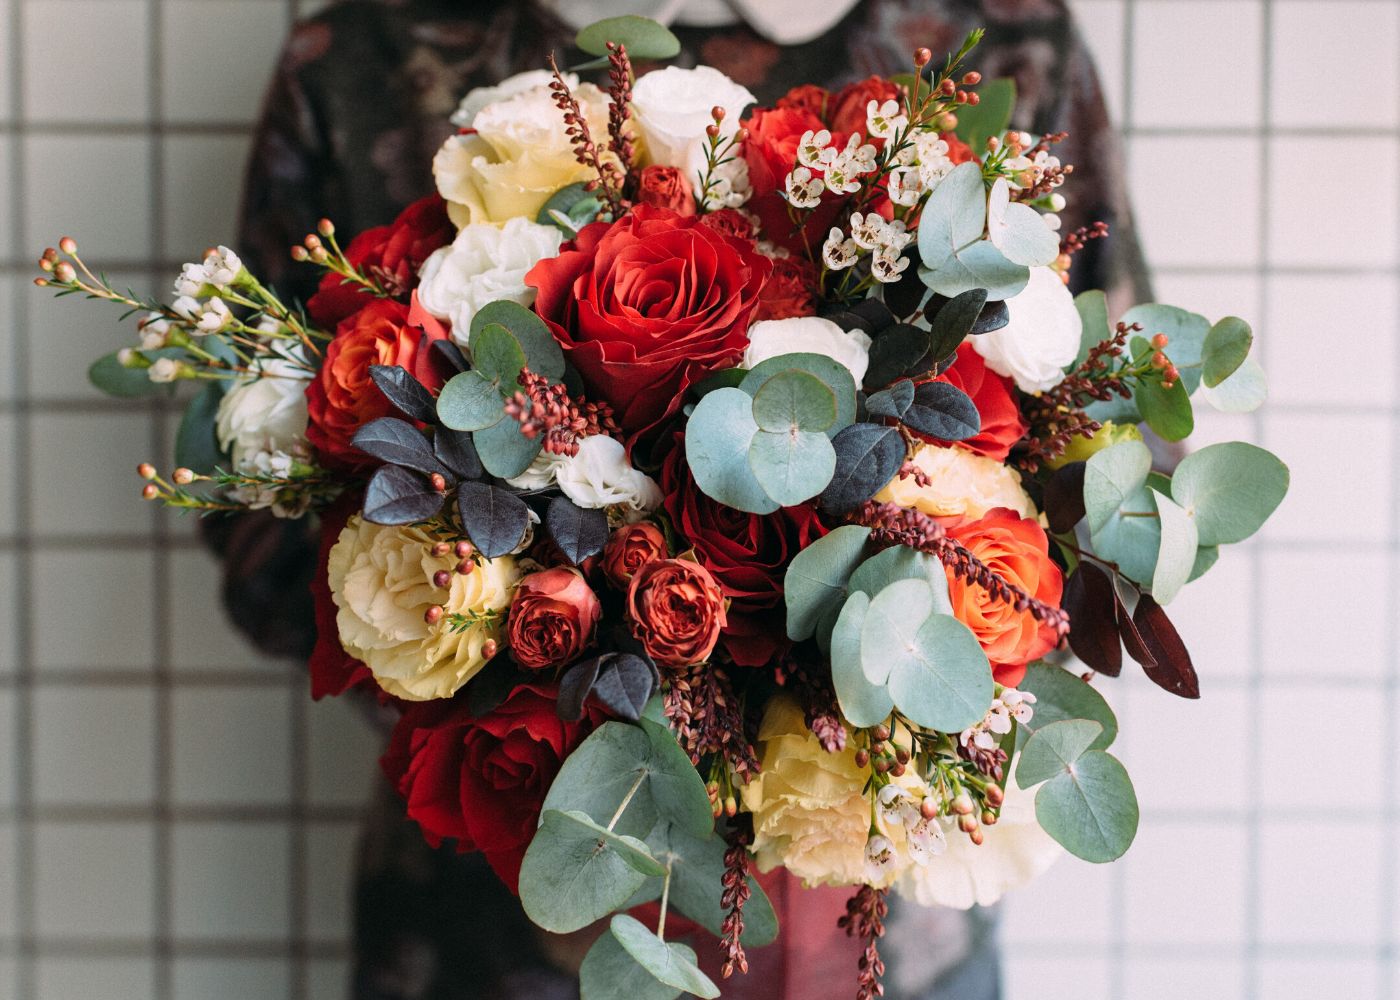 Best florists in Singapore for online orders & delivery | Honeycombers